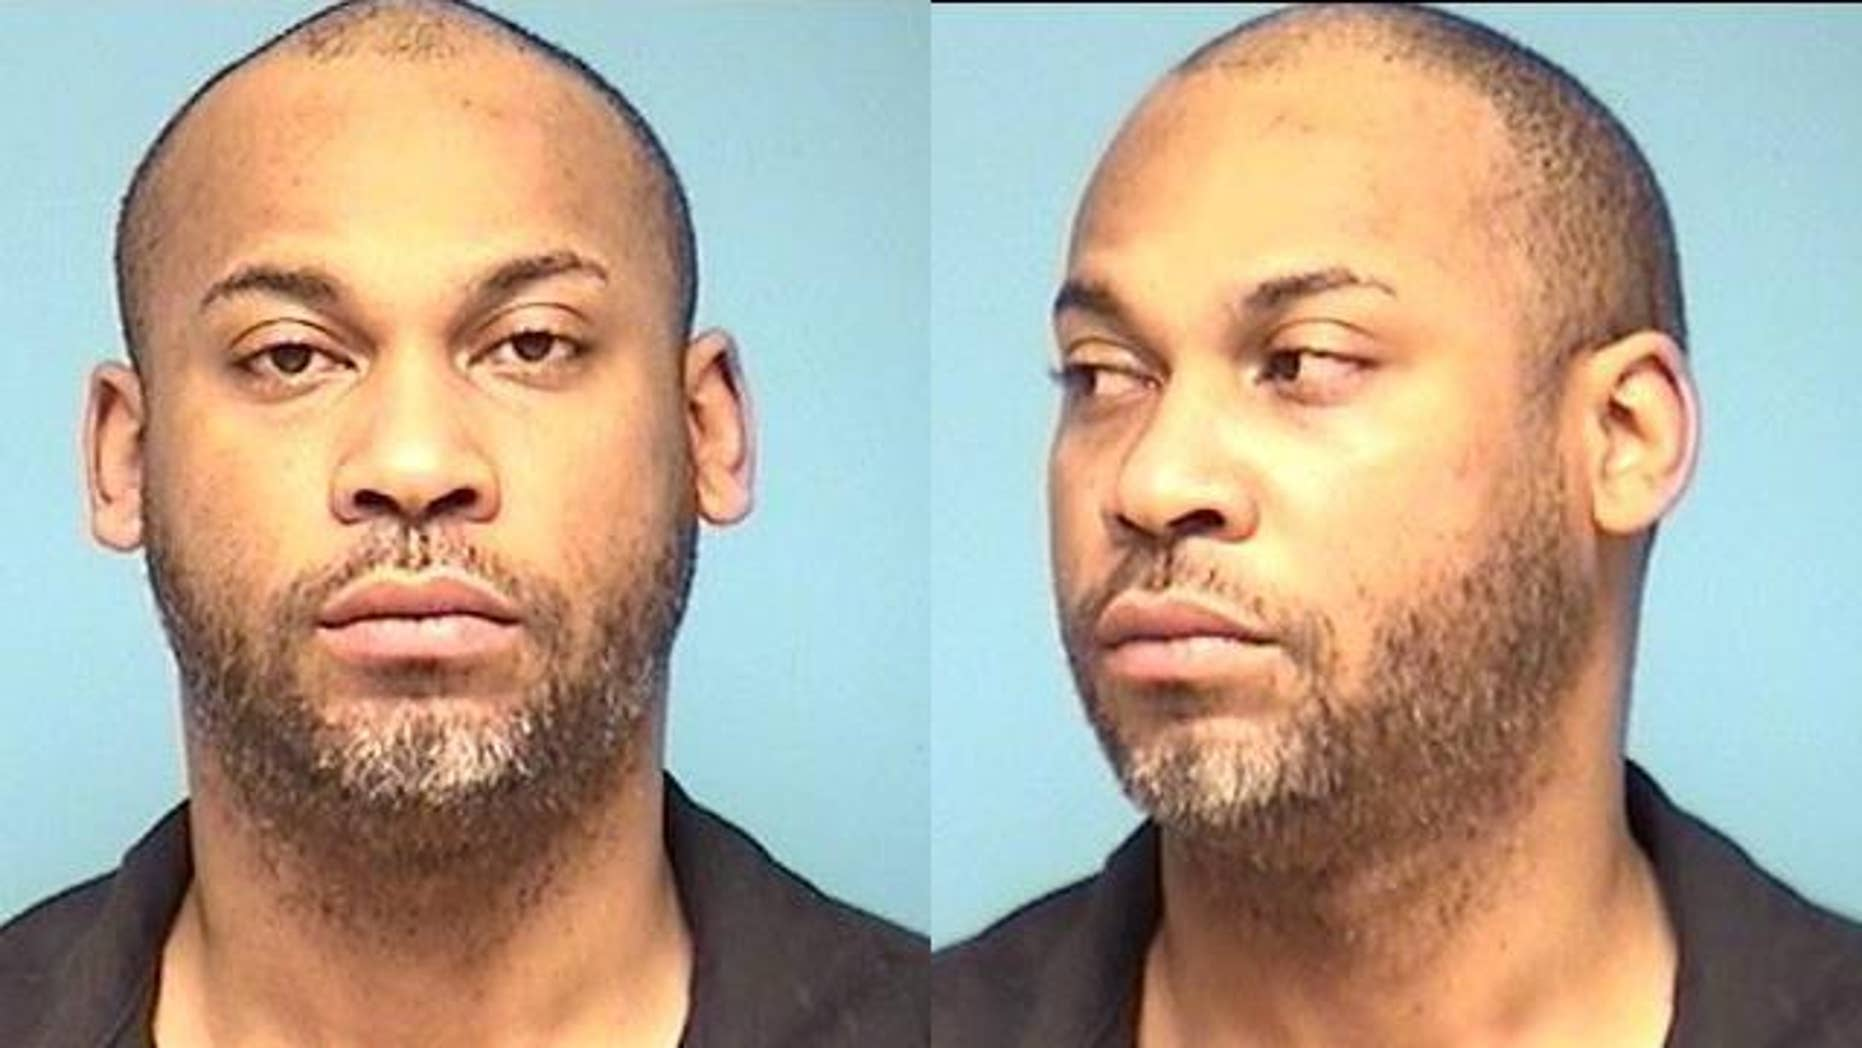 Authorities charged Daniel Scott, Jr. with aggravated menacing.